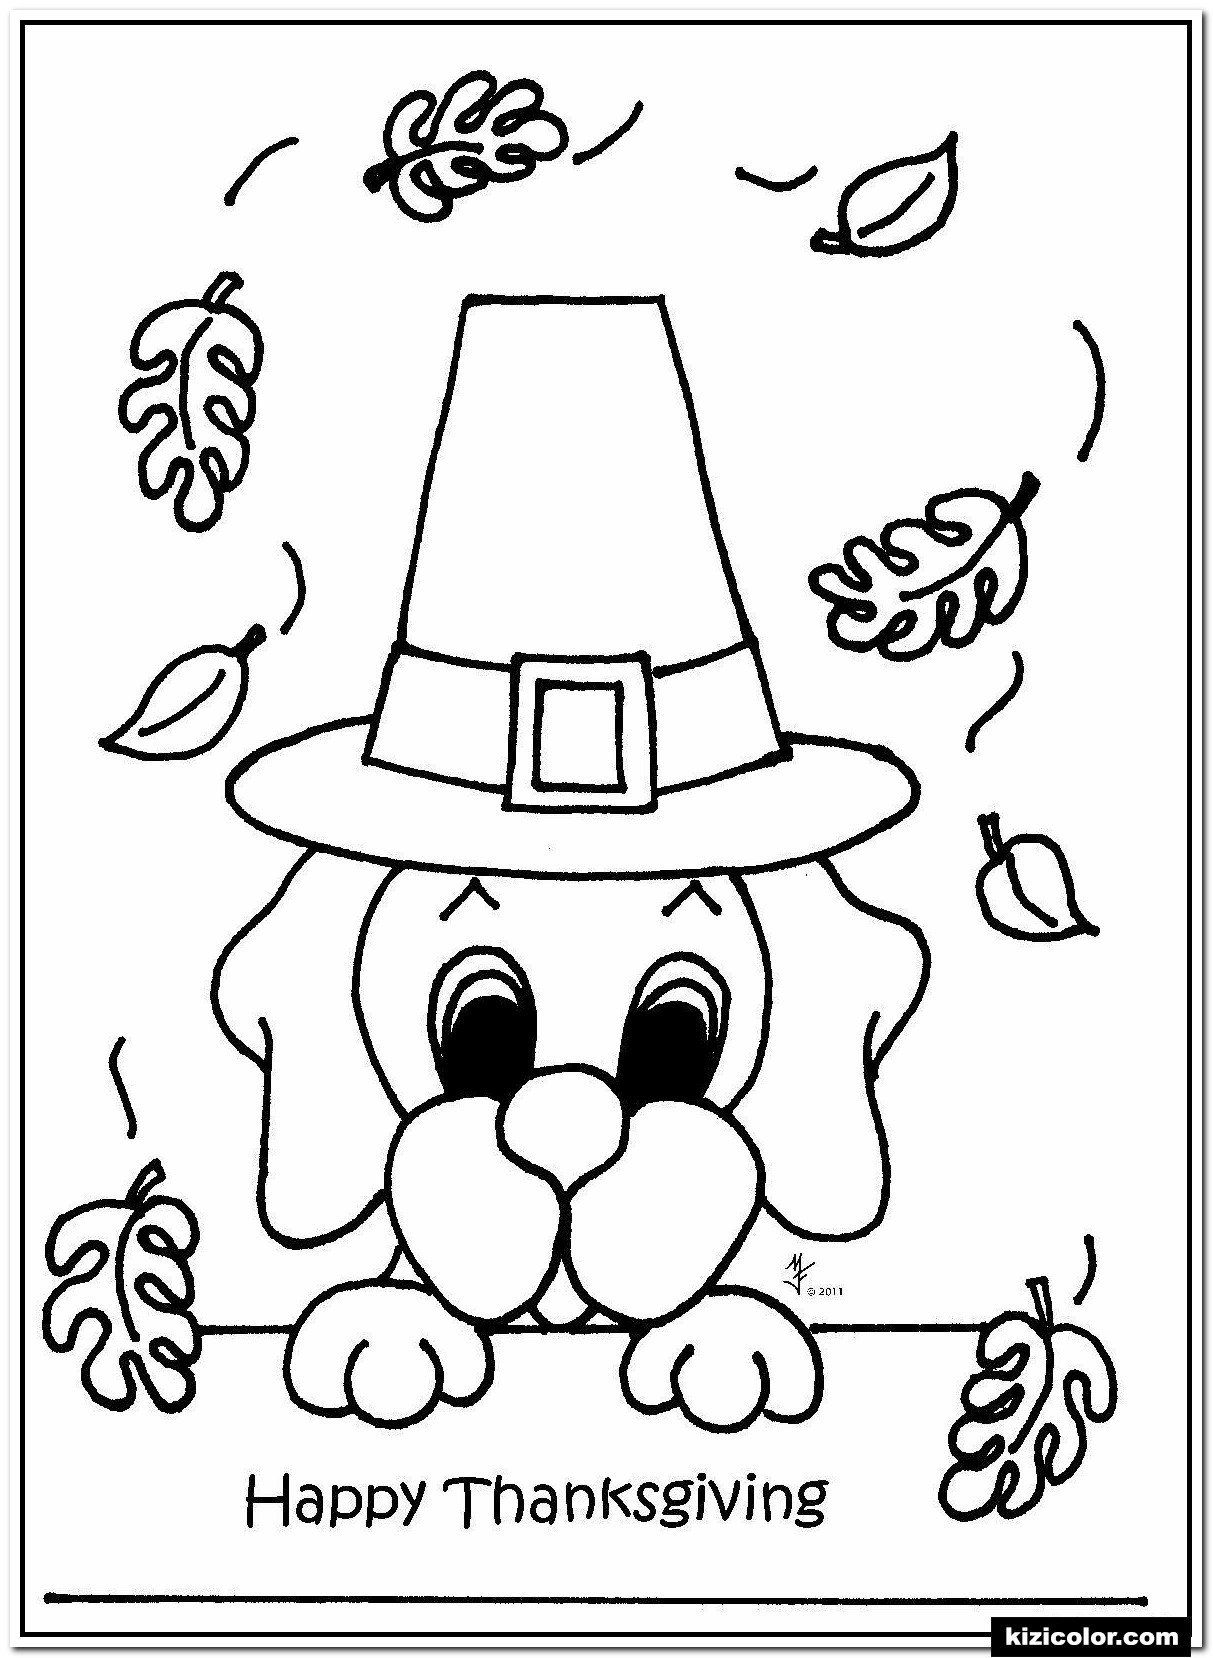 Free Coloring Pages For Thanksgiving on a budget